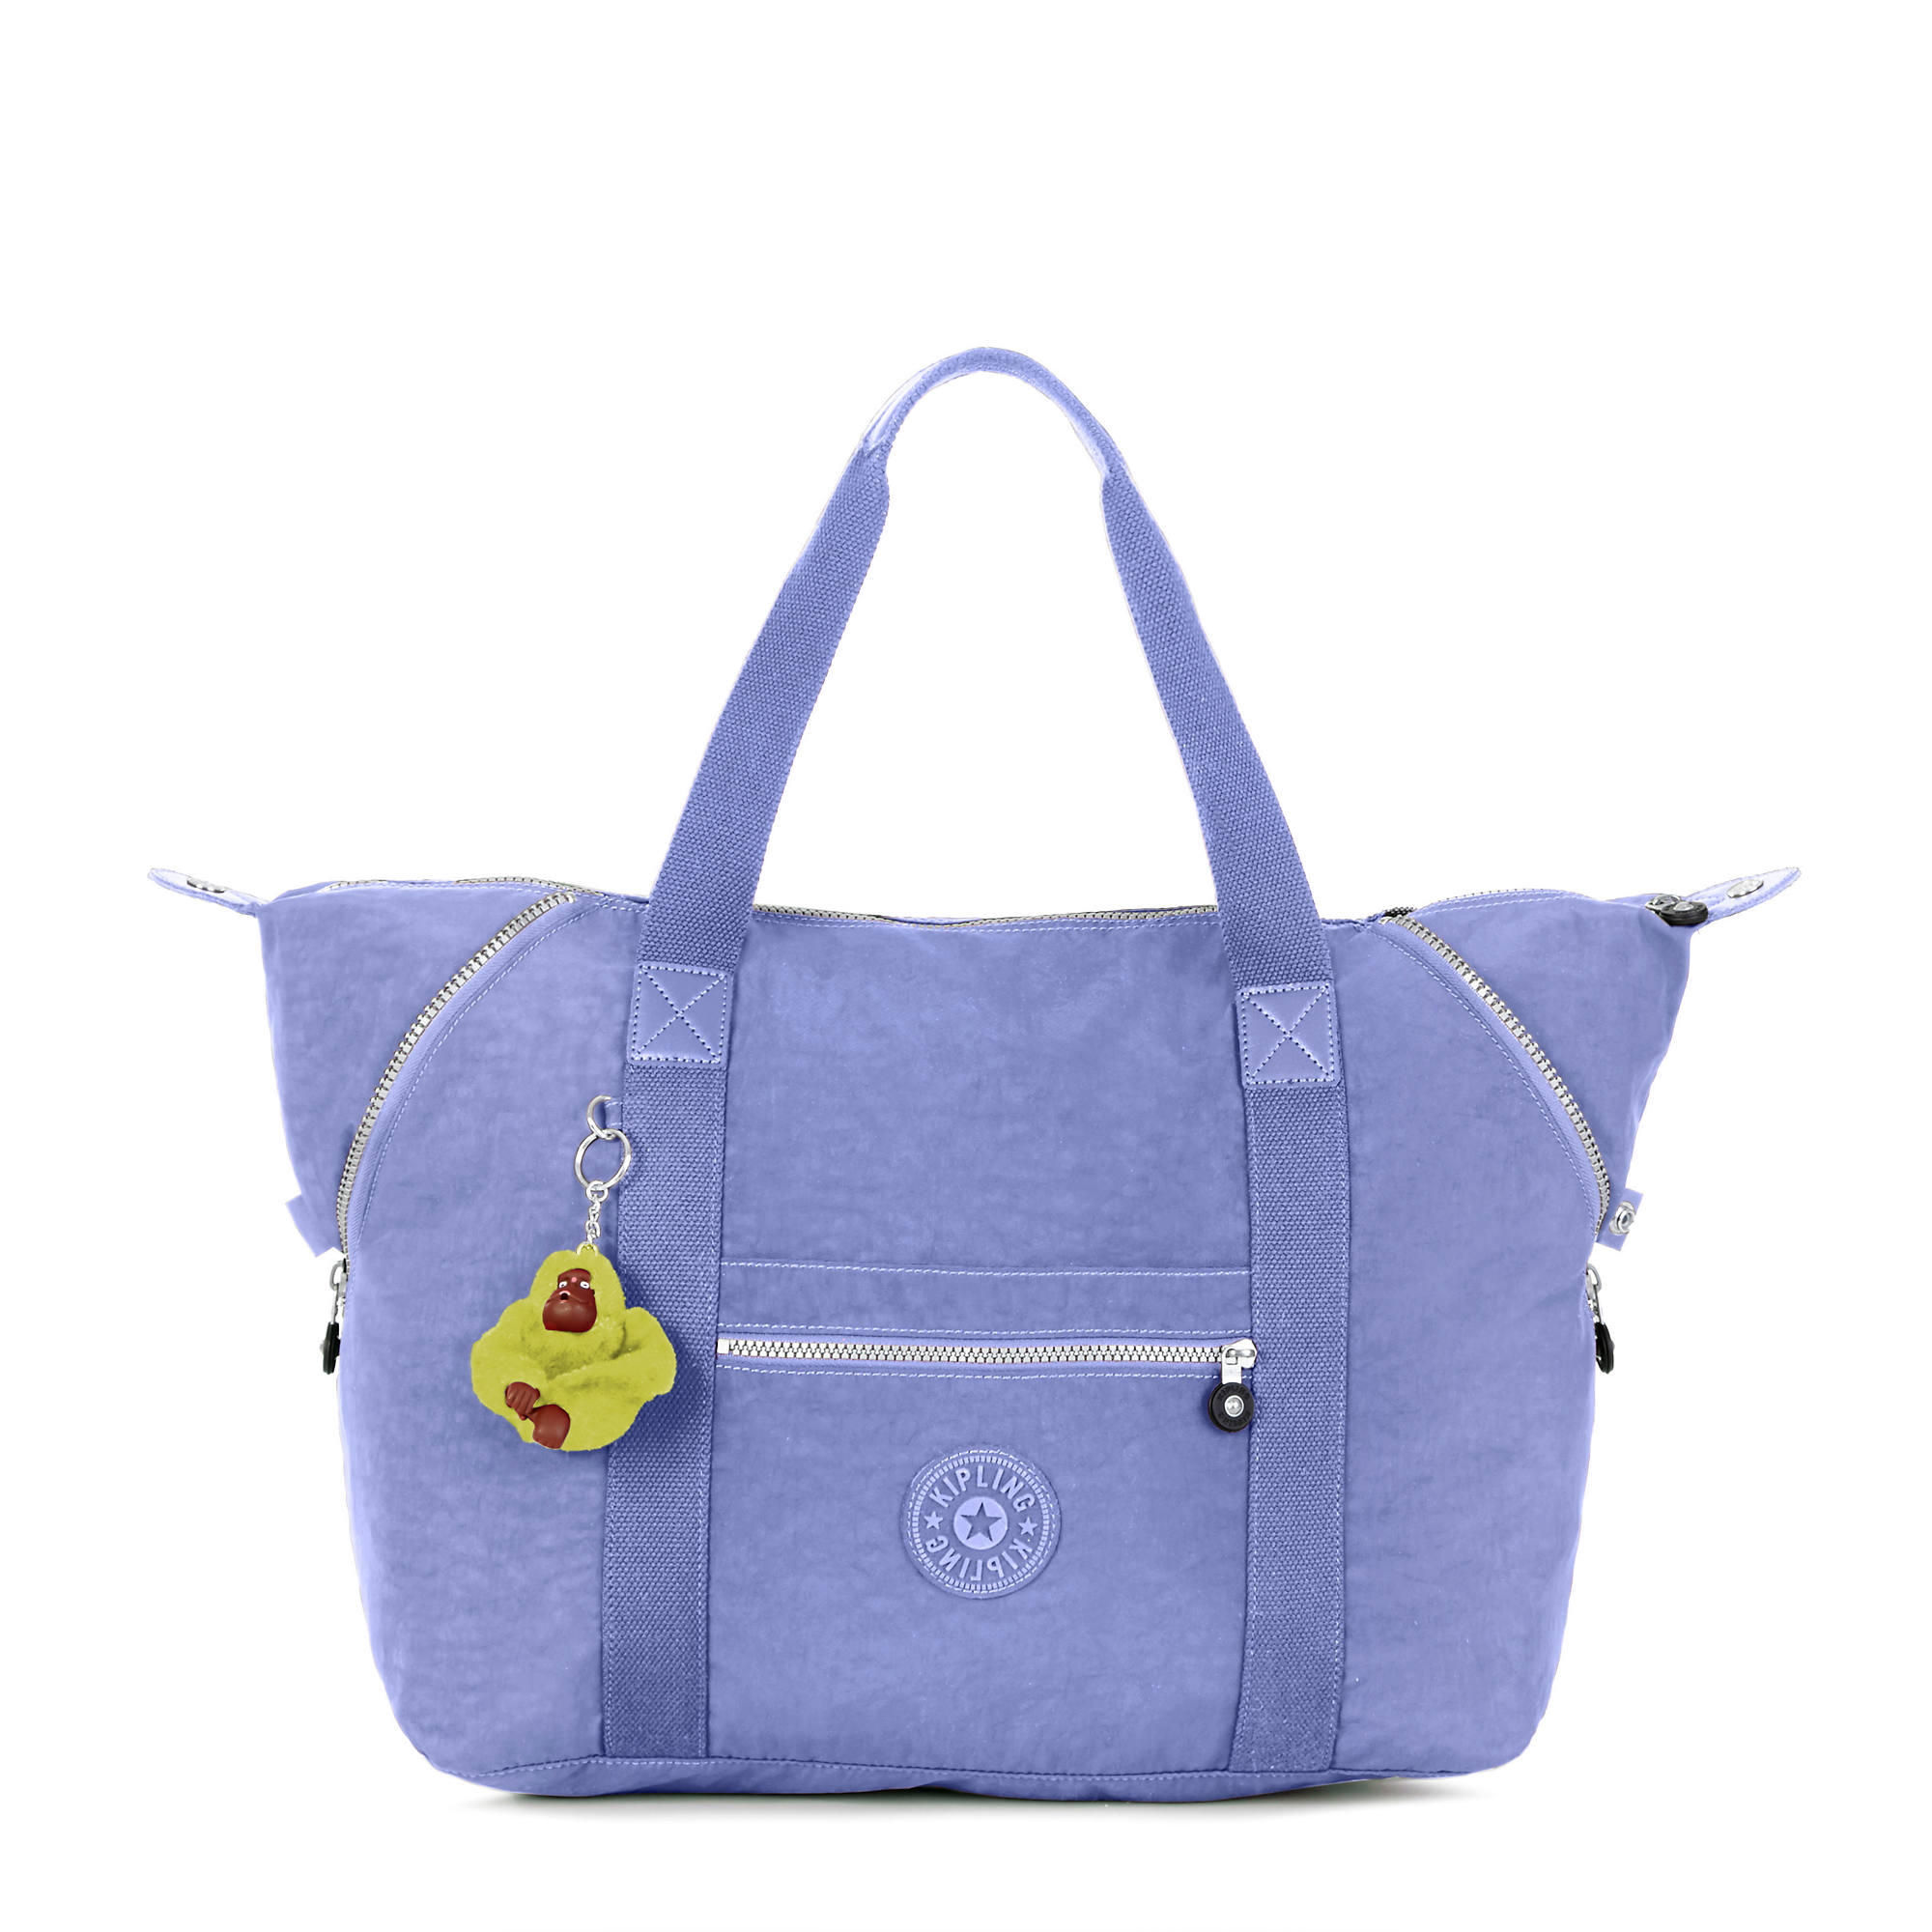 Messenger Bags for Women: Messenger Tote Bags | Kipling